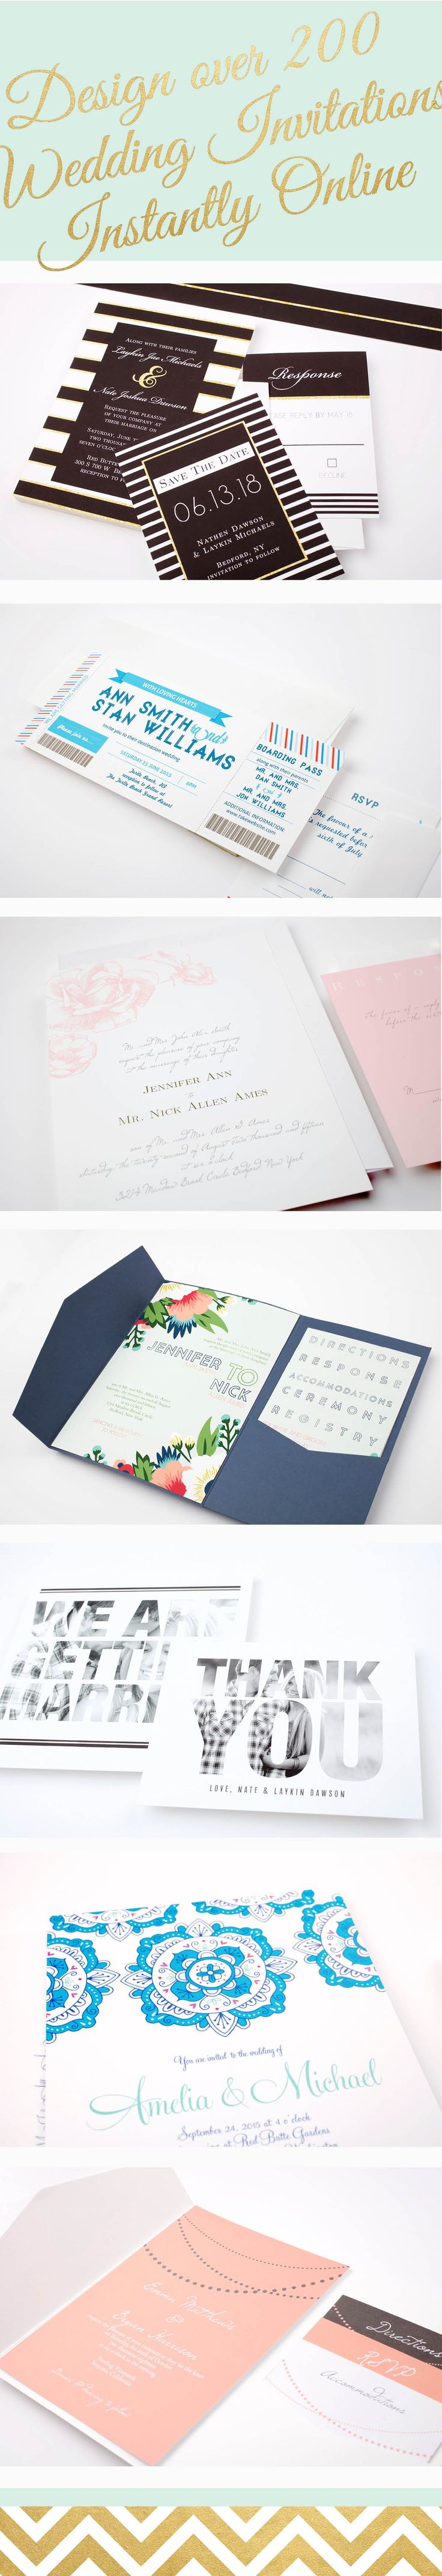 Full customizable wedding invitation sets in over